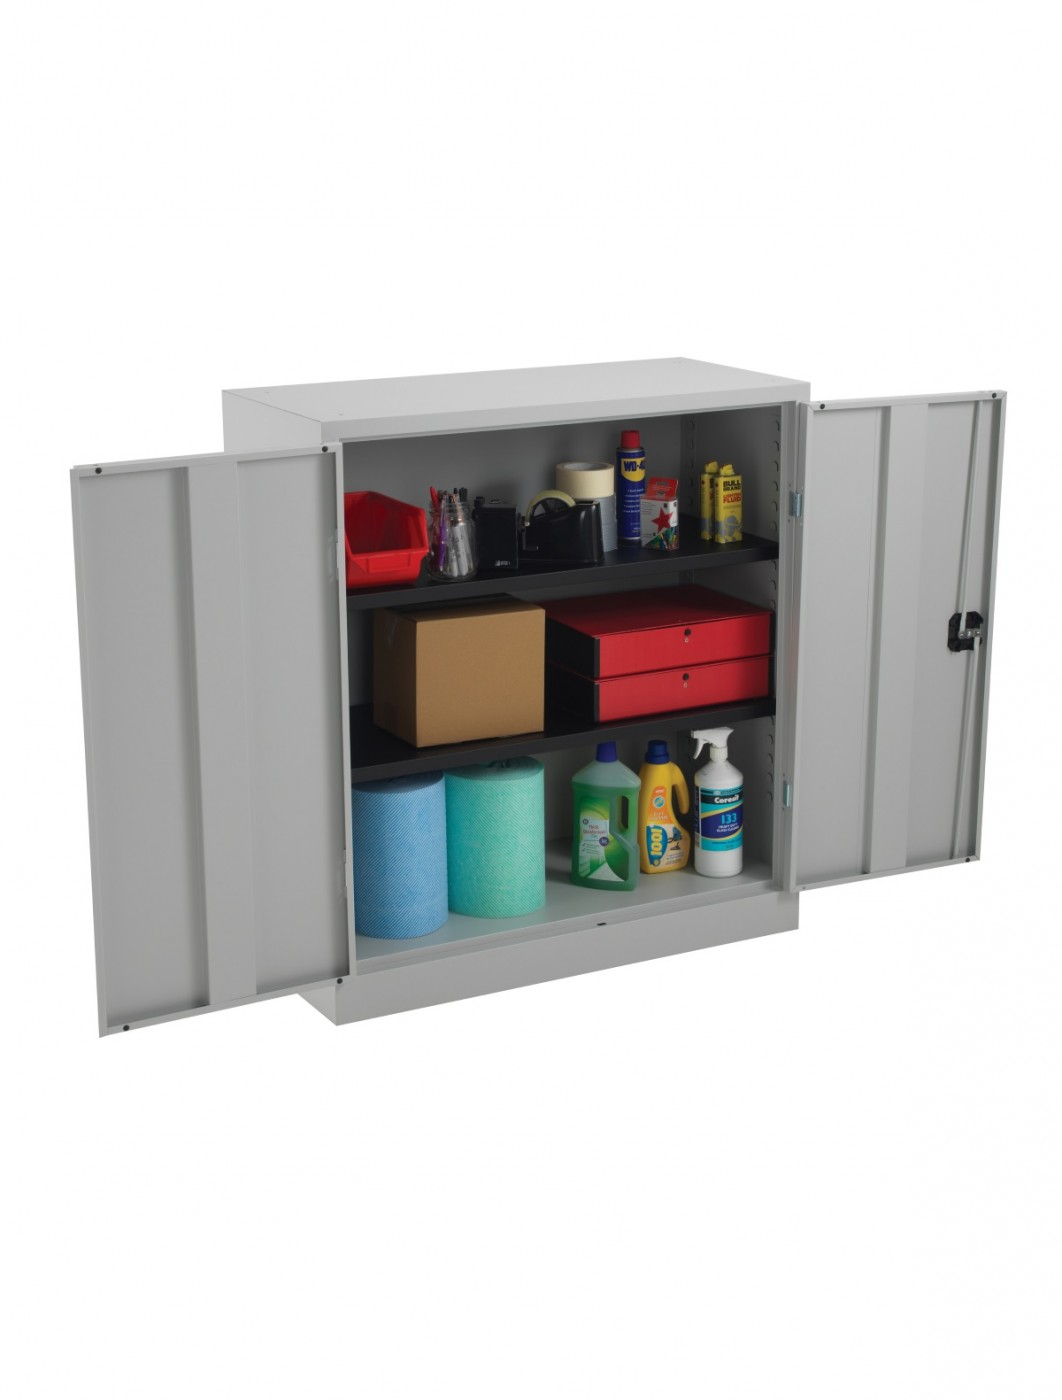 Steel Storage - TC Talos 1000mm Steel Cupboard TCSDDC1000GR in Grey